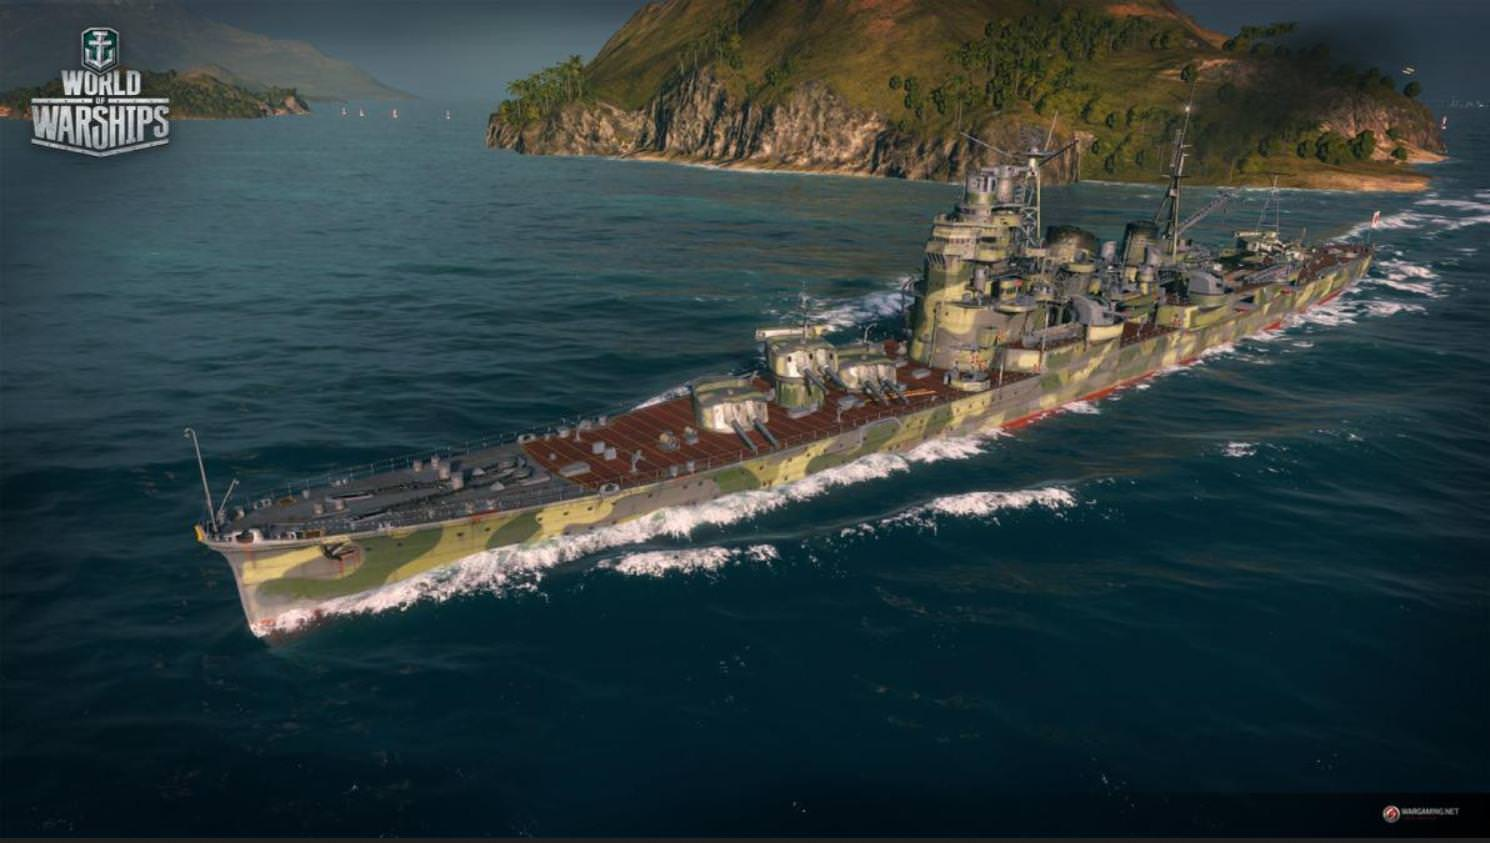 World of Warships Best Cruiser Lines, Ranked Weakest to ...